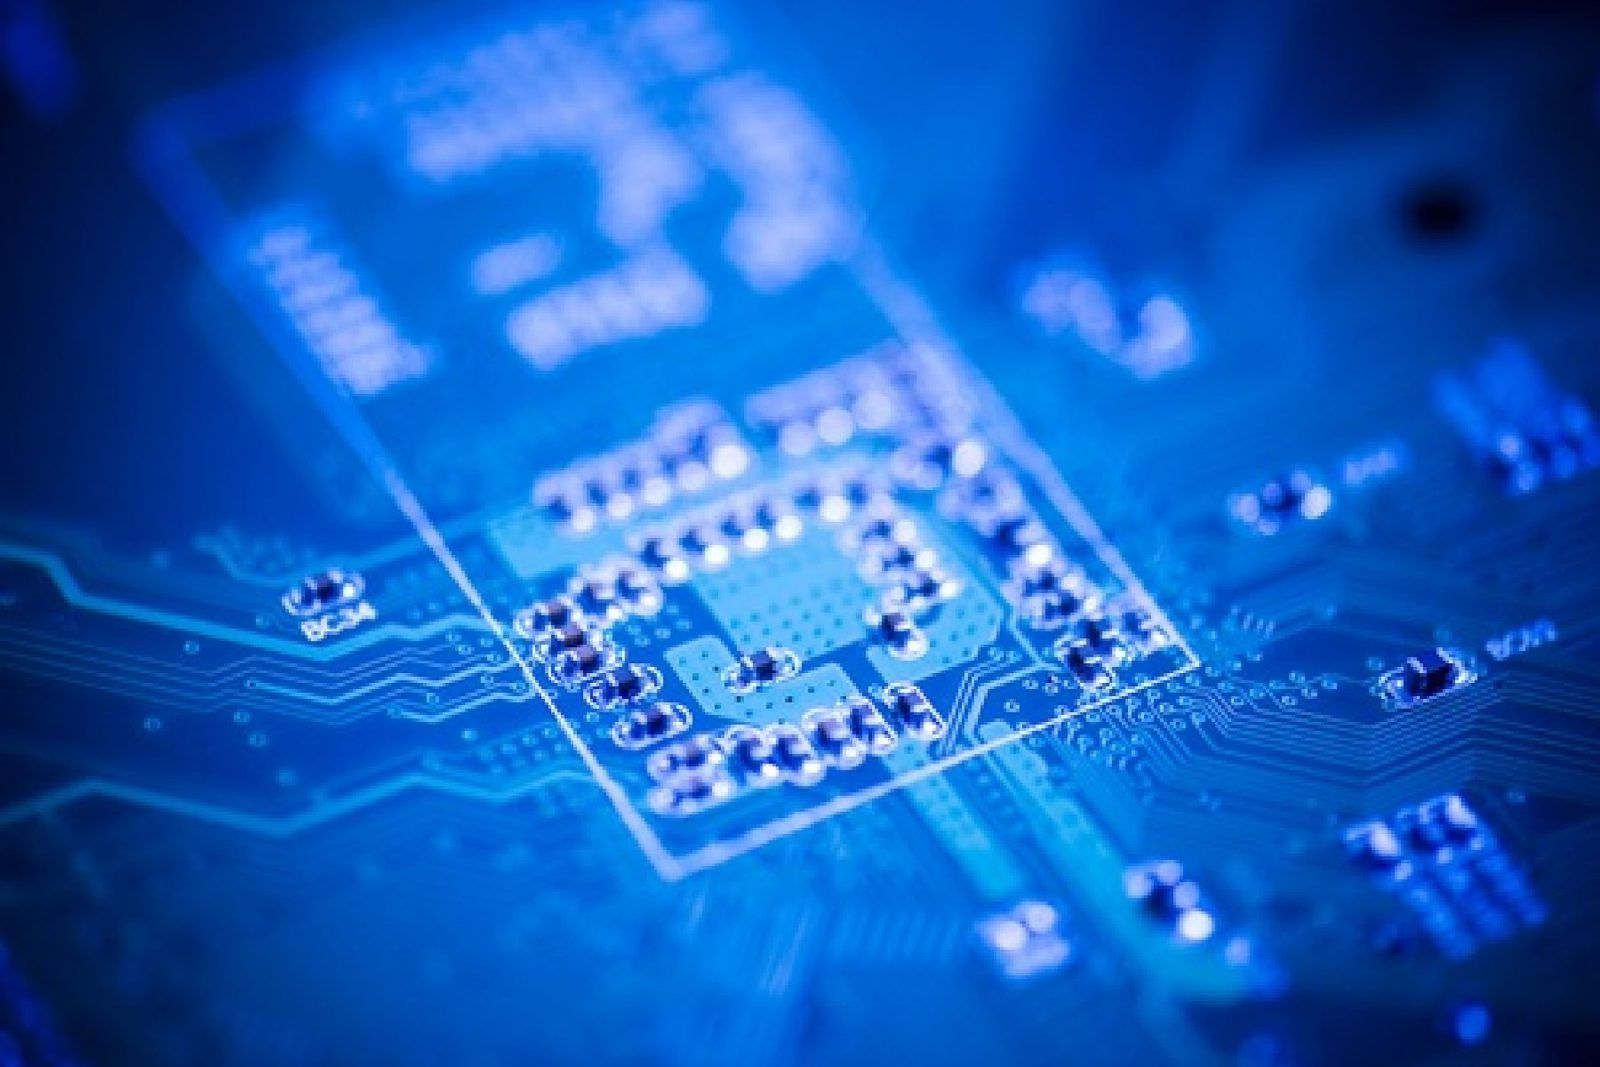 Jb gupta electronic devices and circuits pdf free download